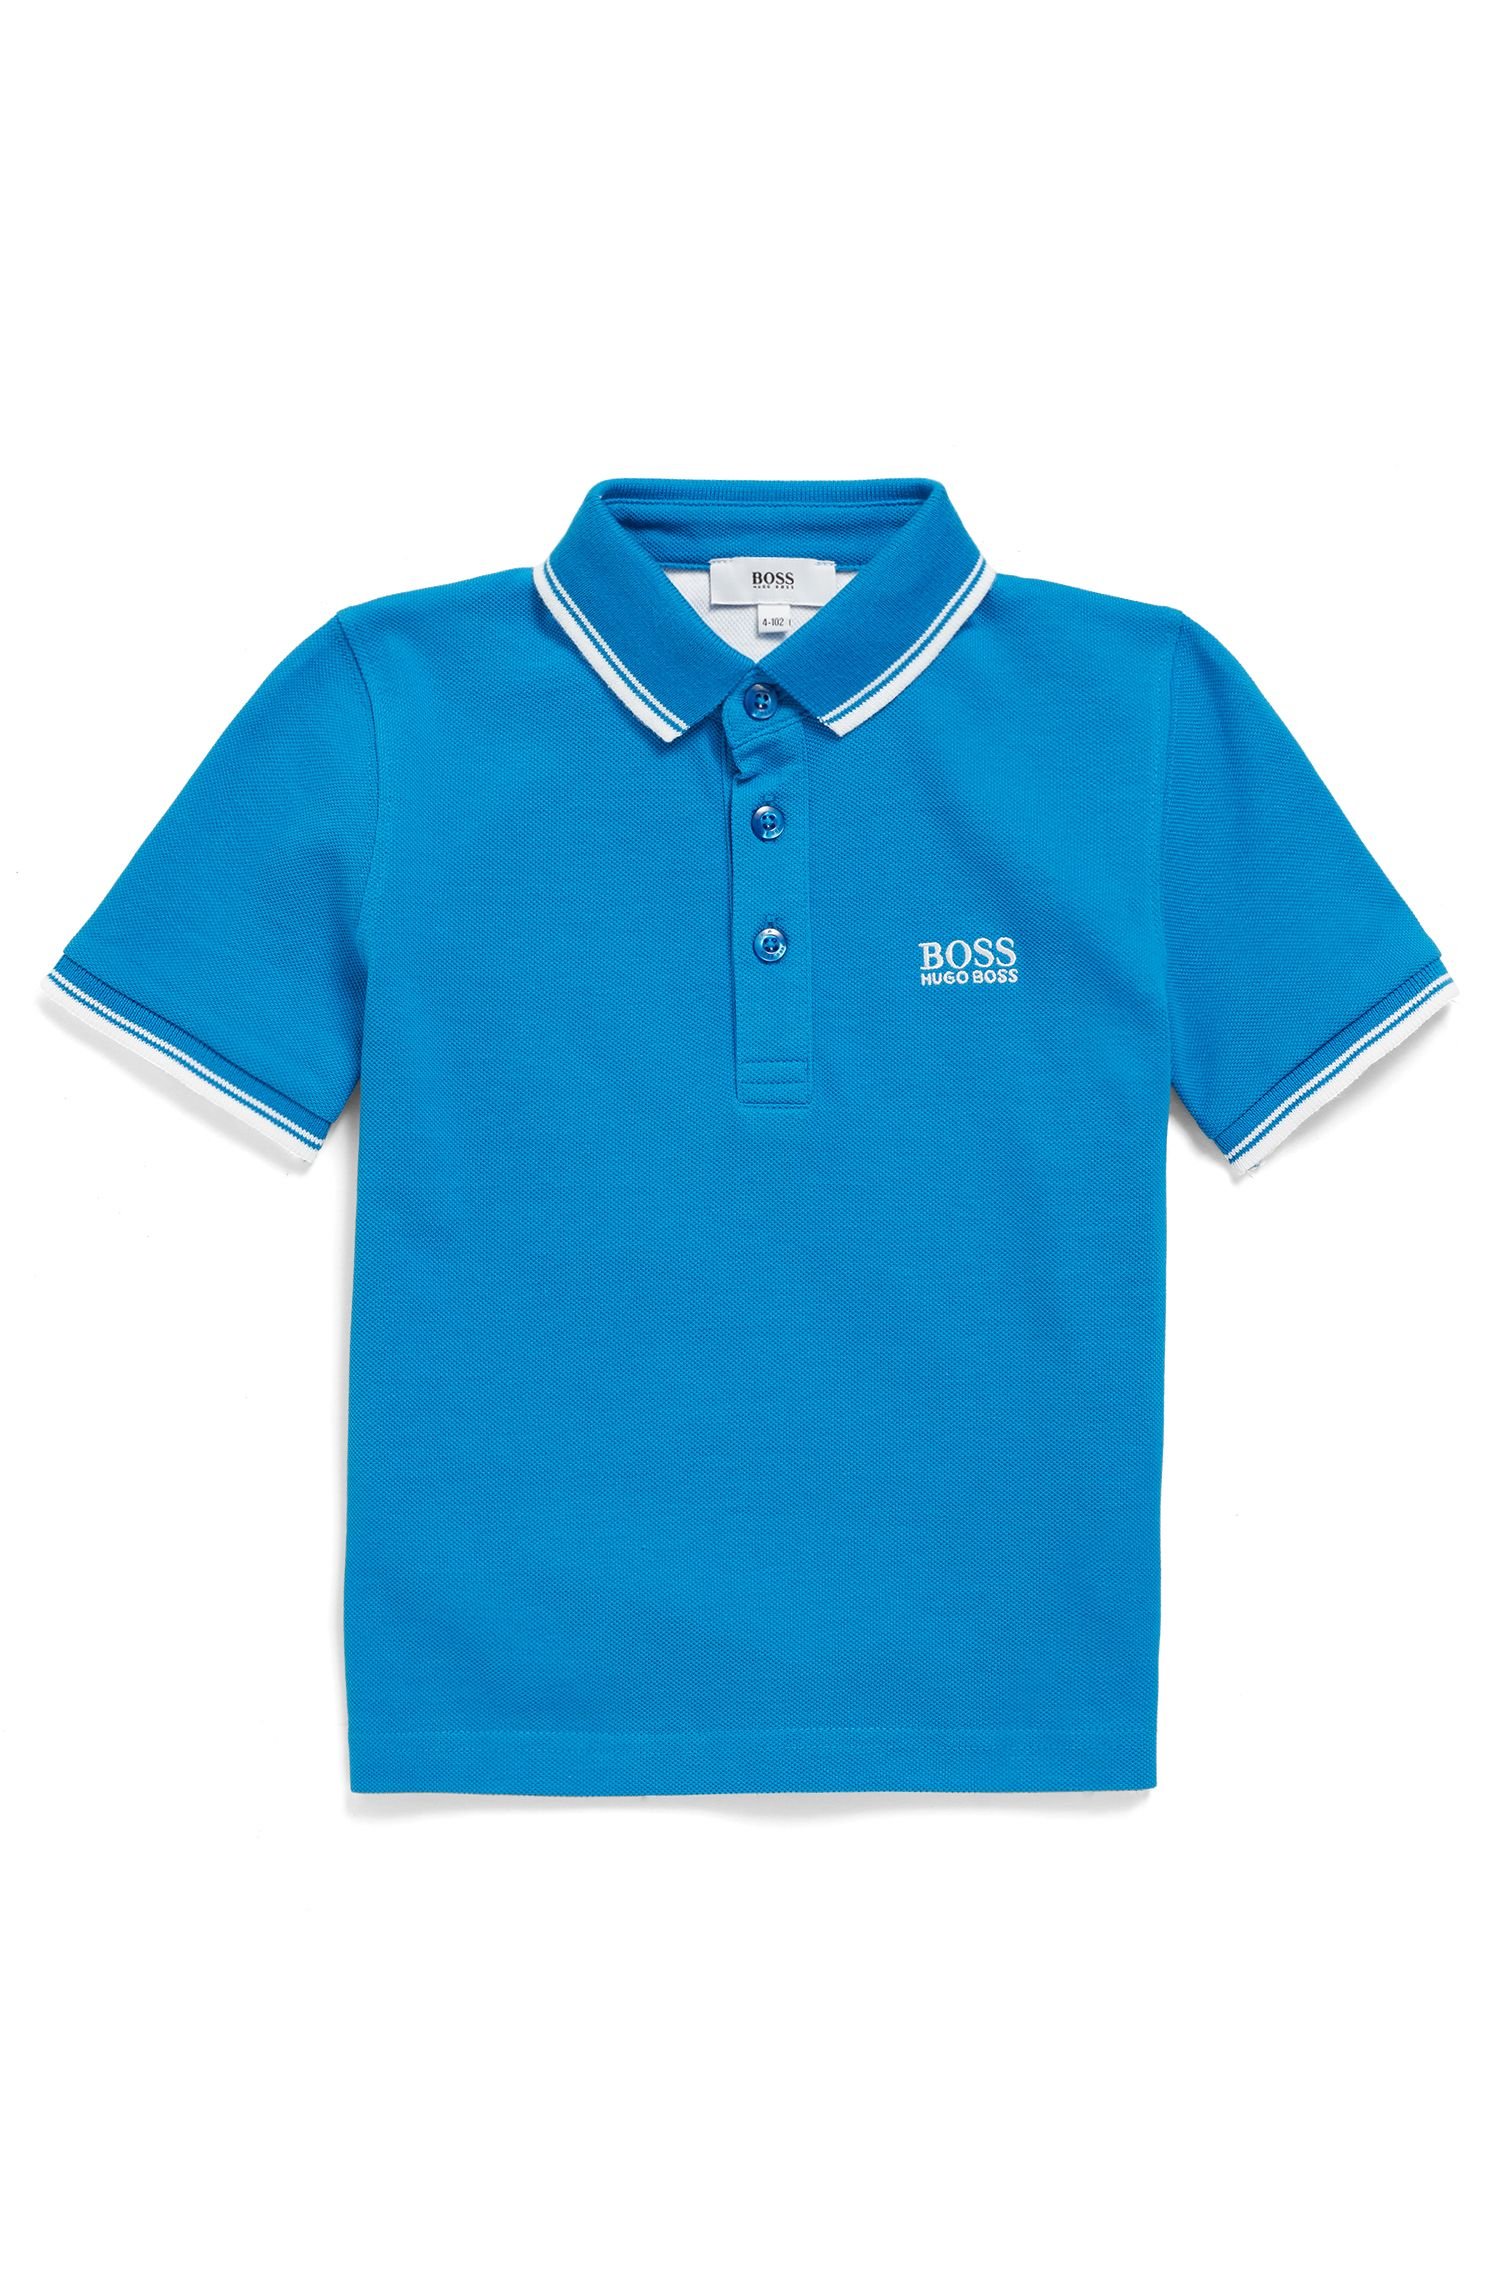 Kids' cotton polo shirt with logo embroidery, Blue